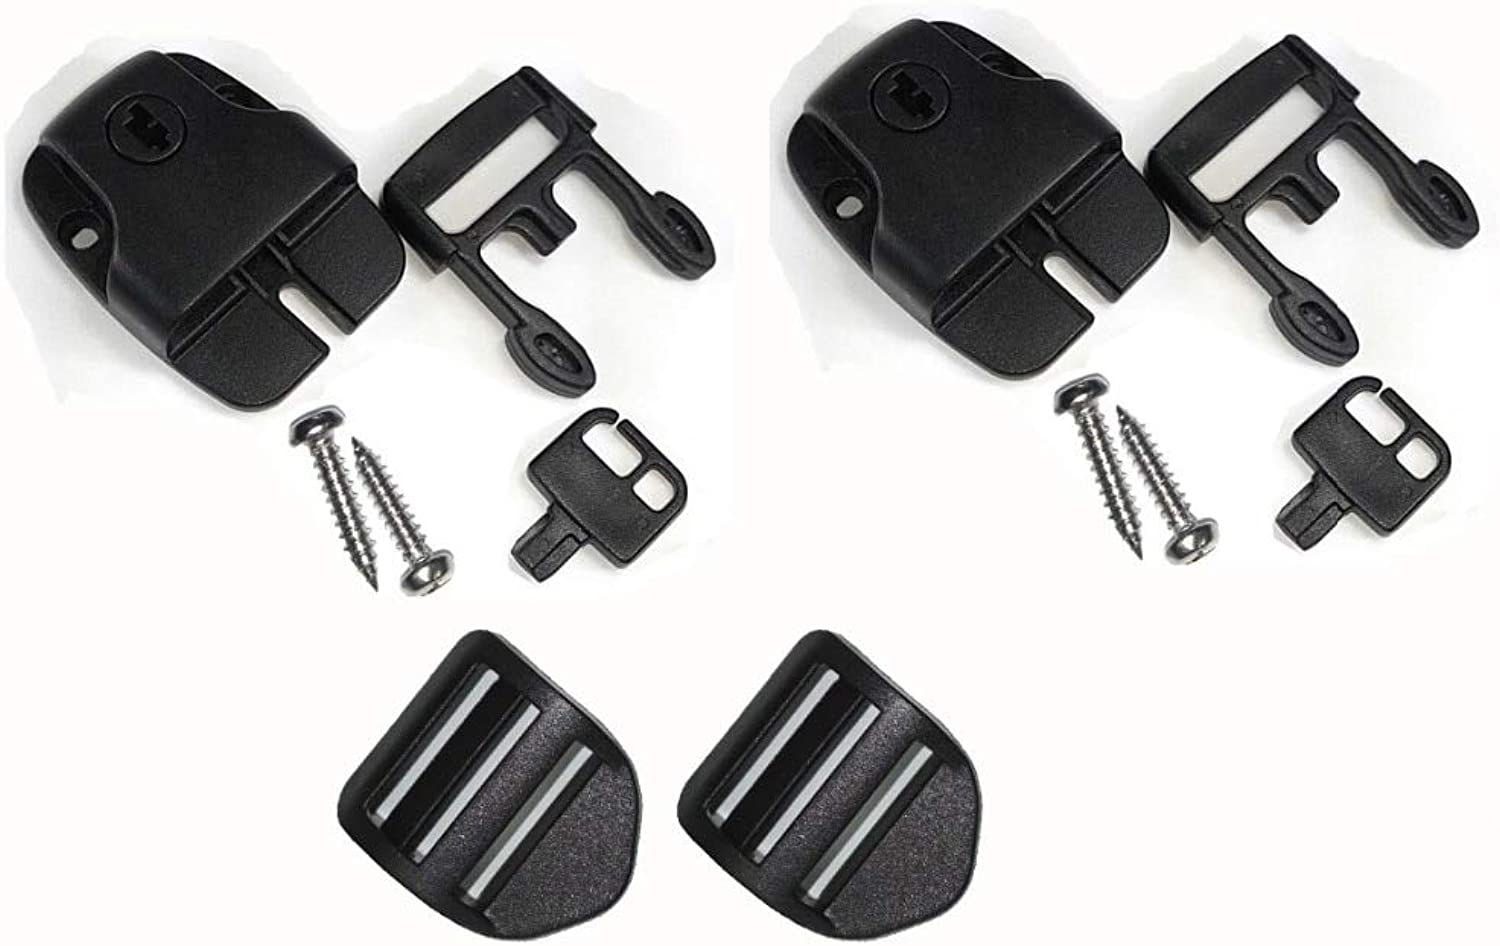 Hot Tub Spa Cover Latch Repair Kit, Safety Buckle Latch Pool